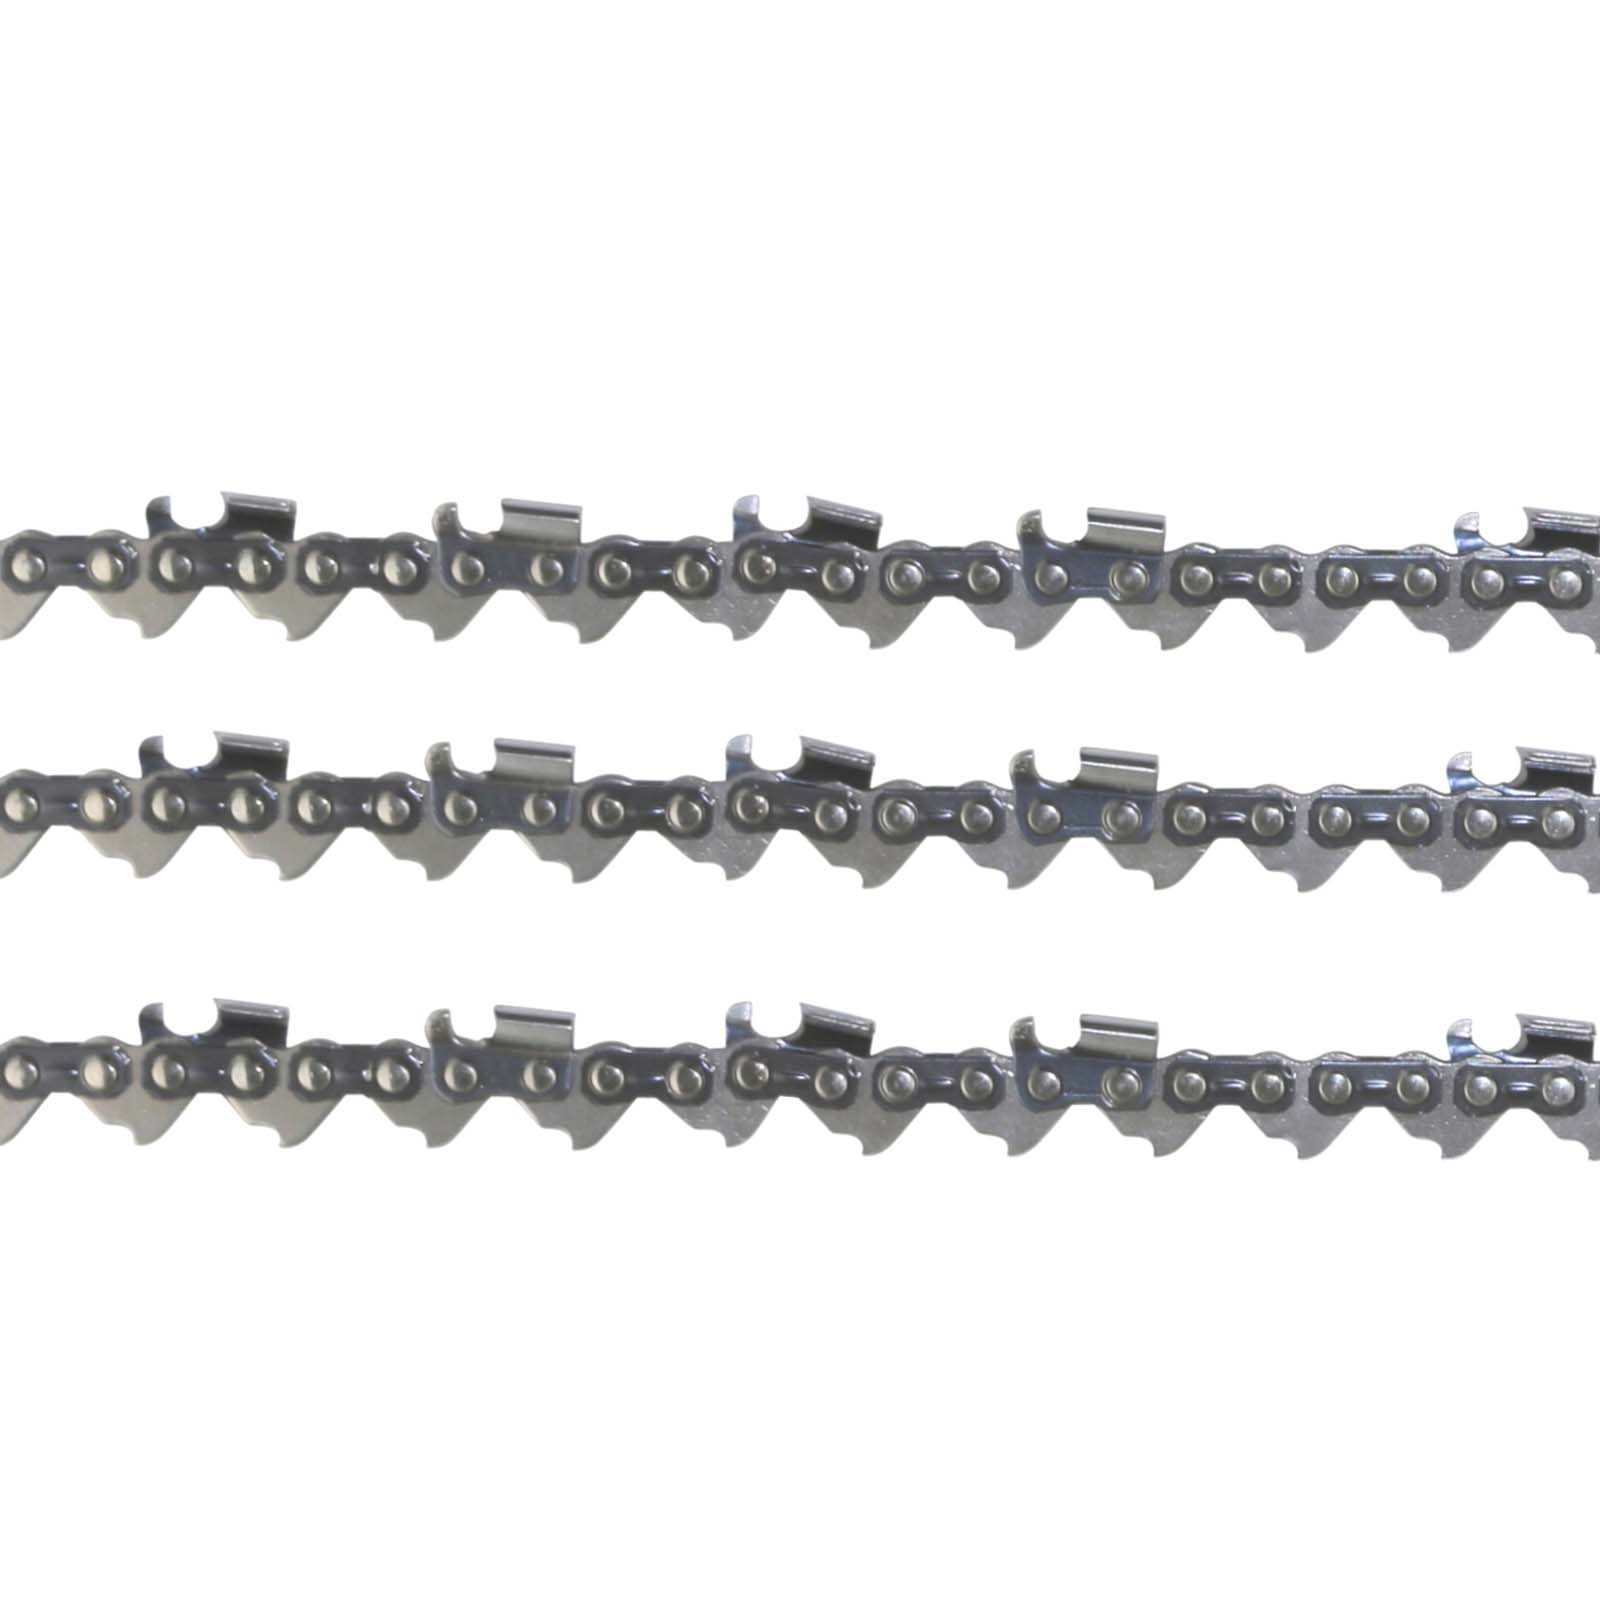 "3x Chainsaw Chains Semi 325 063 68DL for Stihl 18"" Bar MS250 MS251 MS230 MS231"